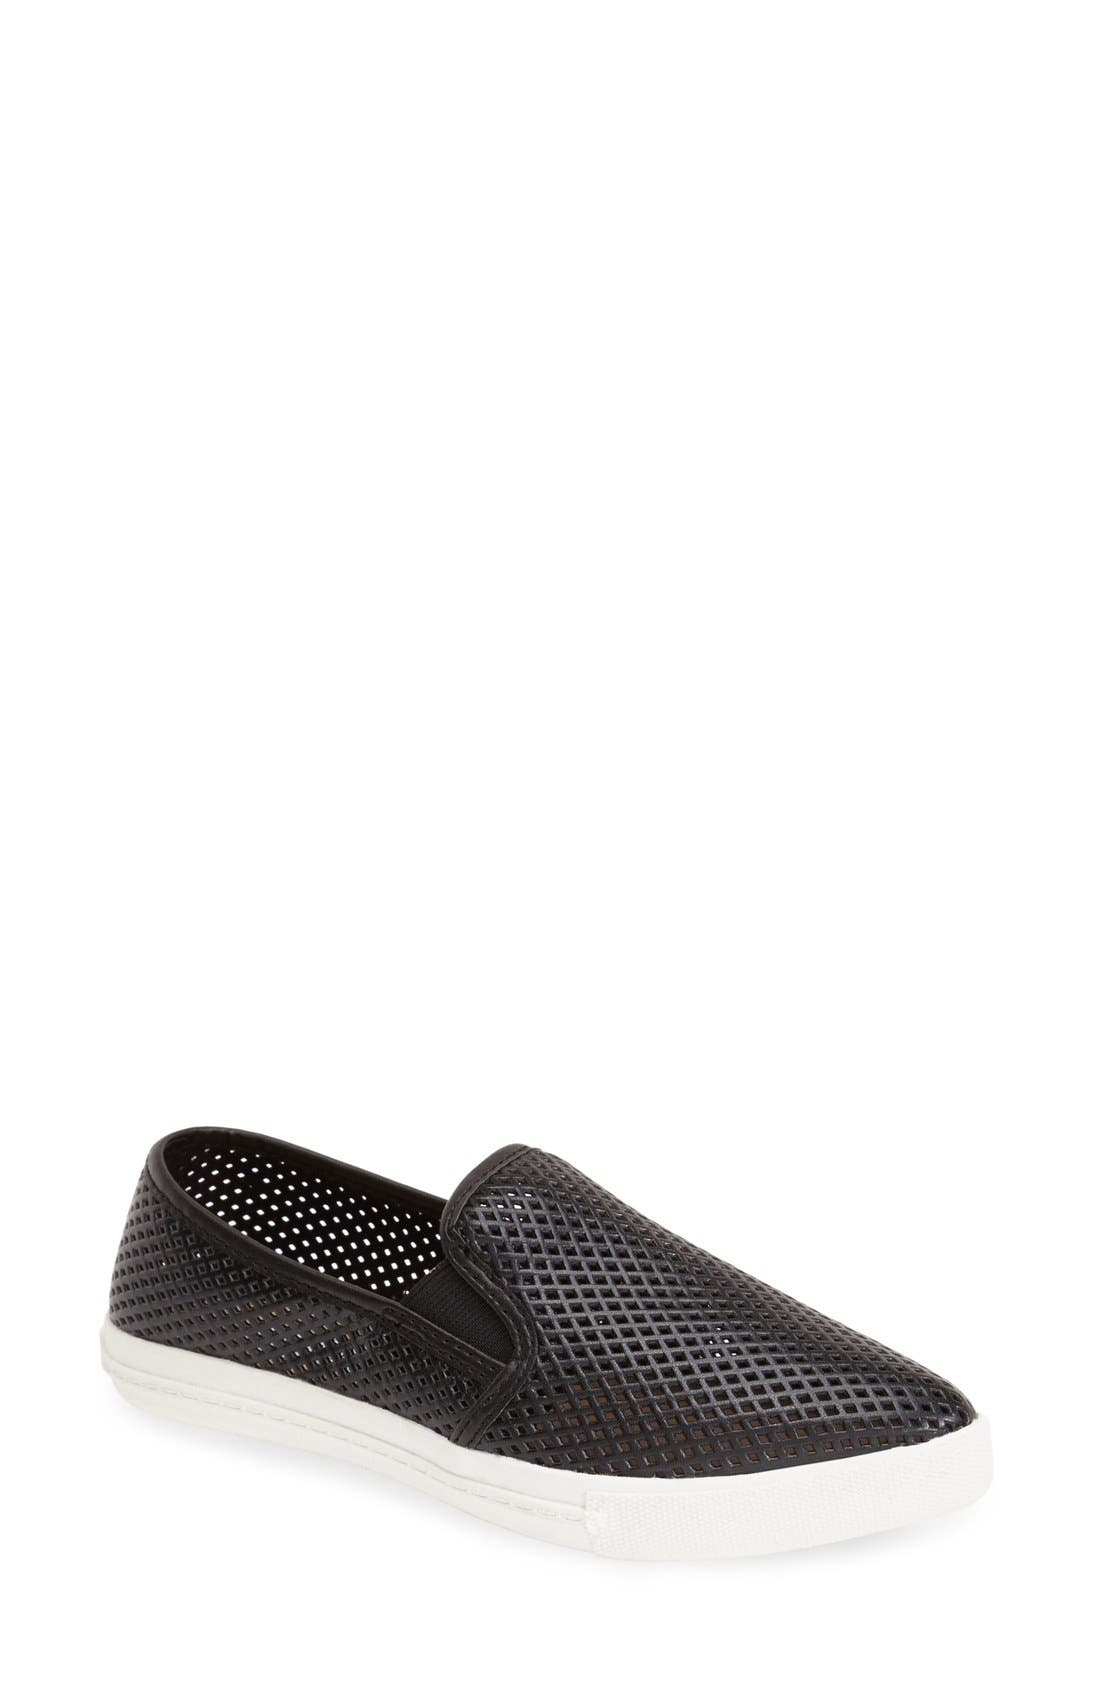 'Virggo' Perforated Slip-On Sneaker, Main, color, 005